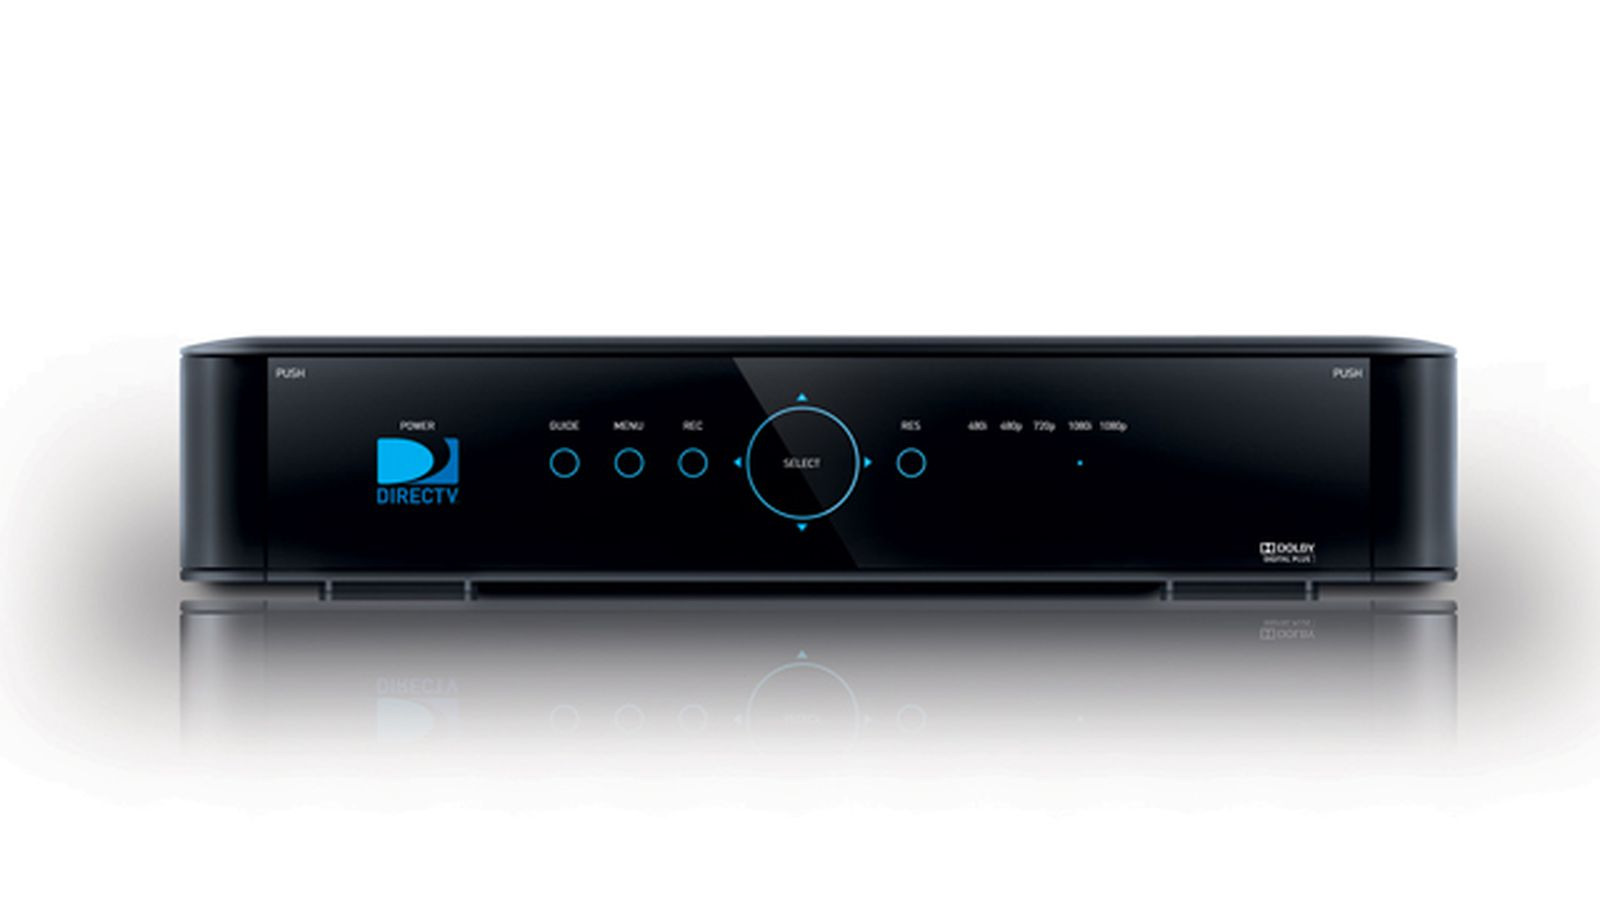 Directv Genie Dvr Can Deliver Content To Four Tvs At The